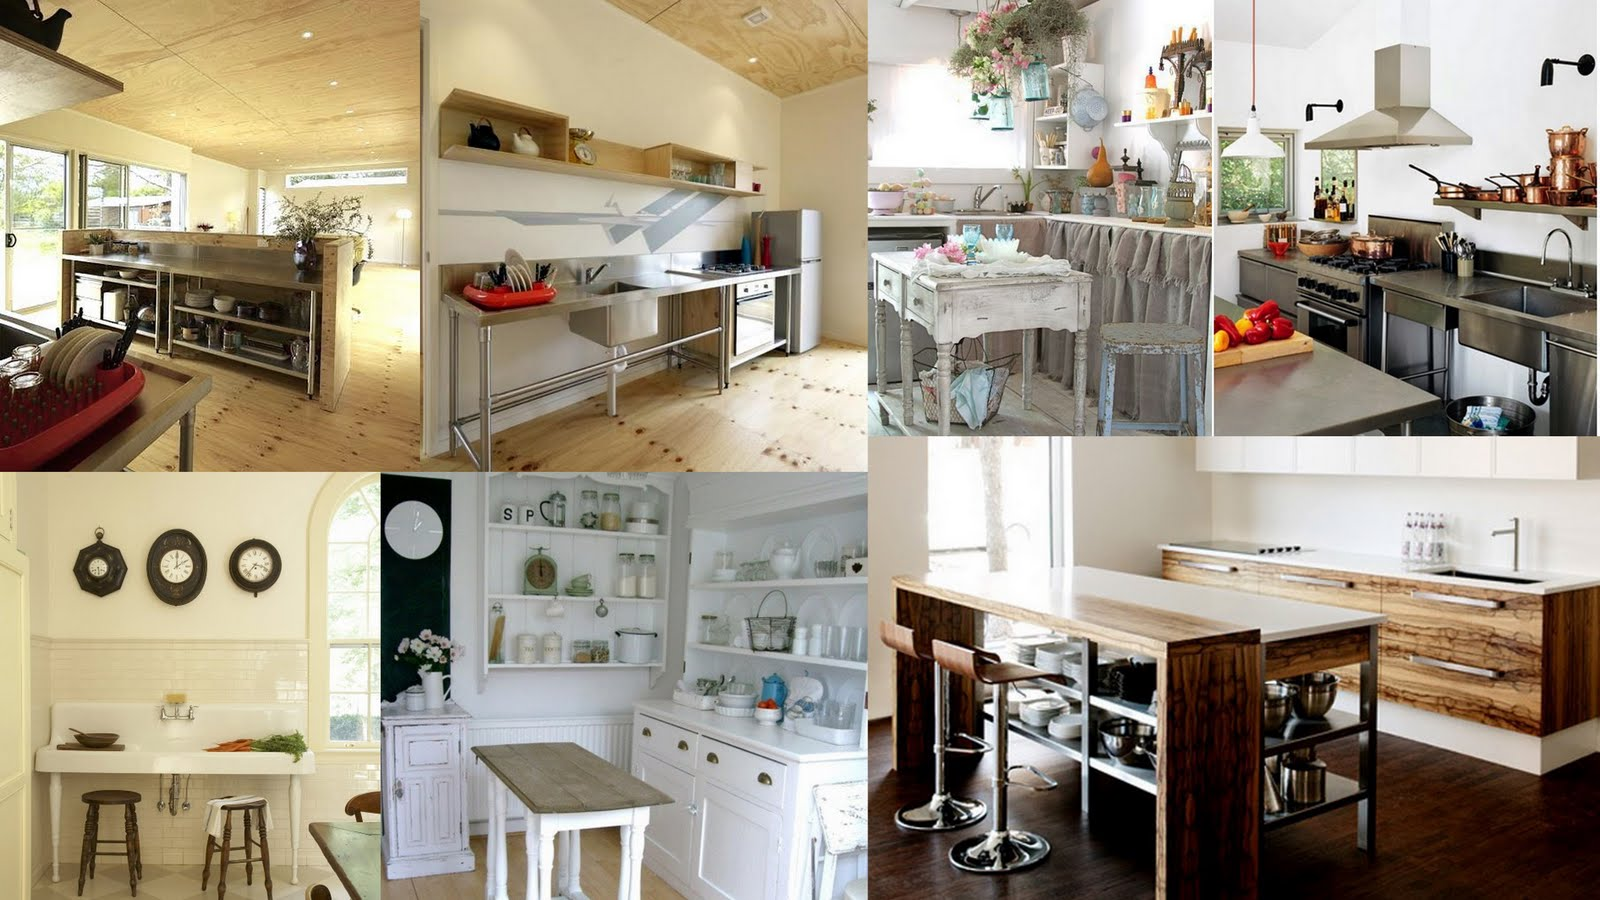 NonTraditional Kitchen CabiDesign